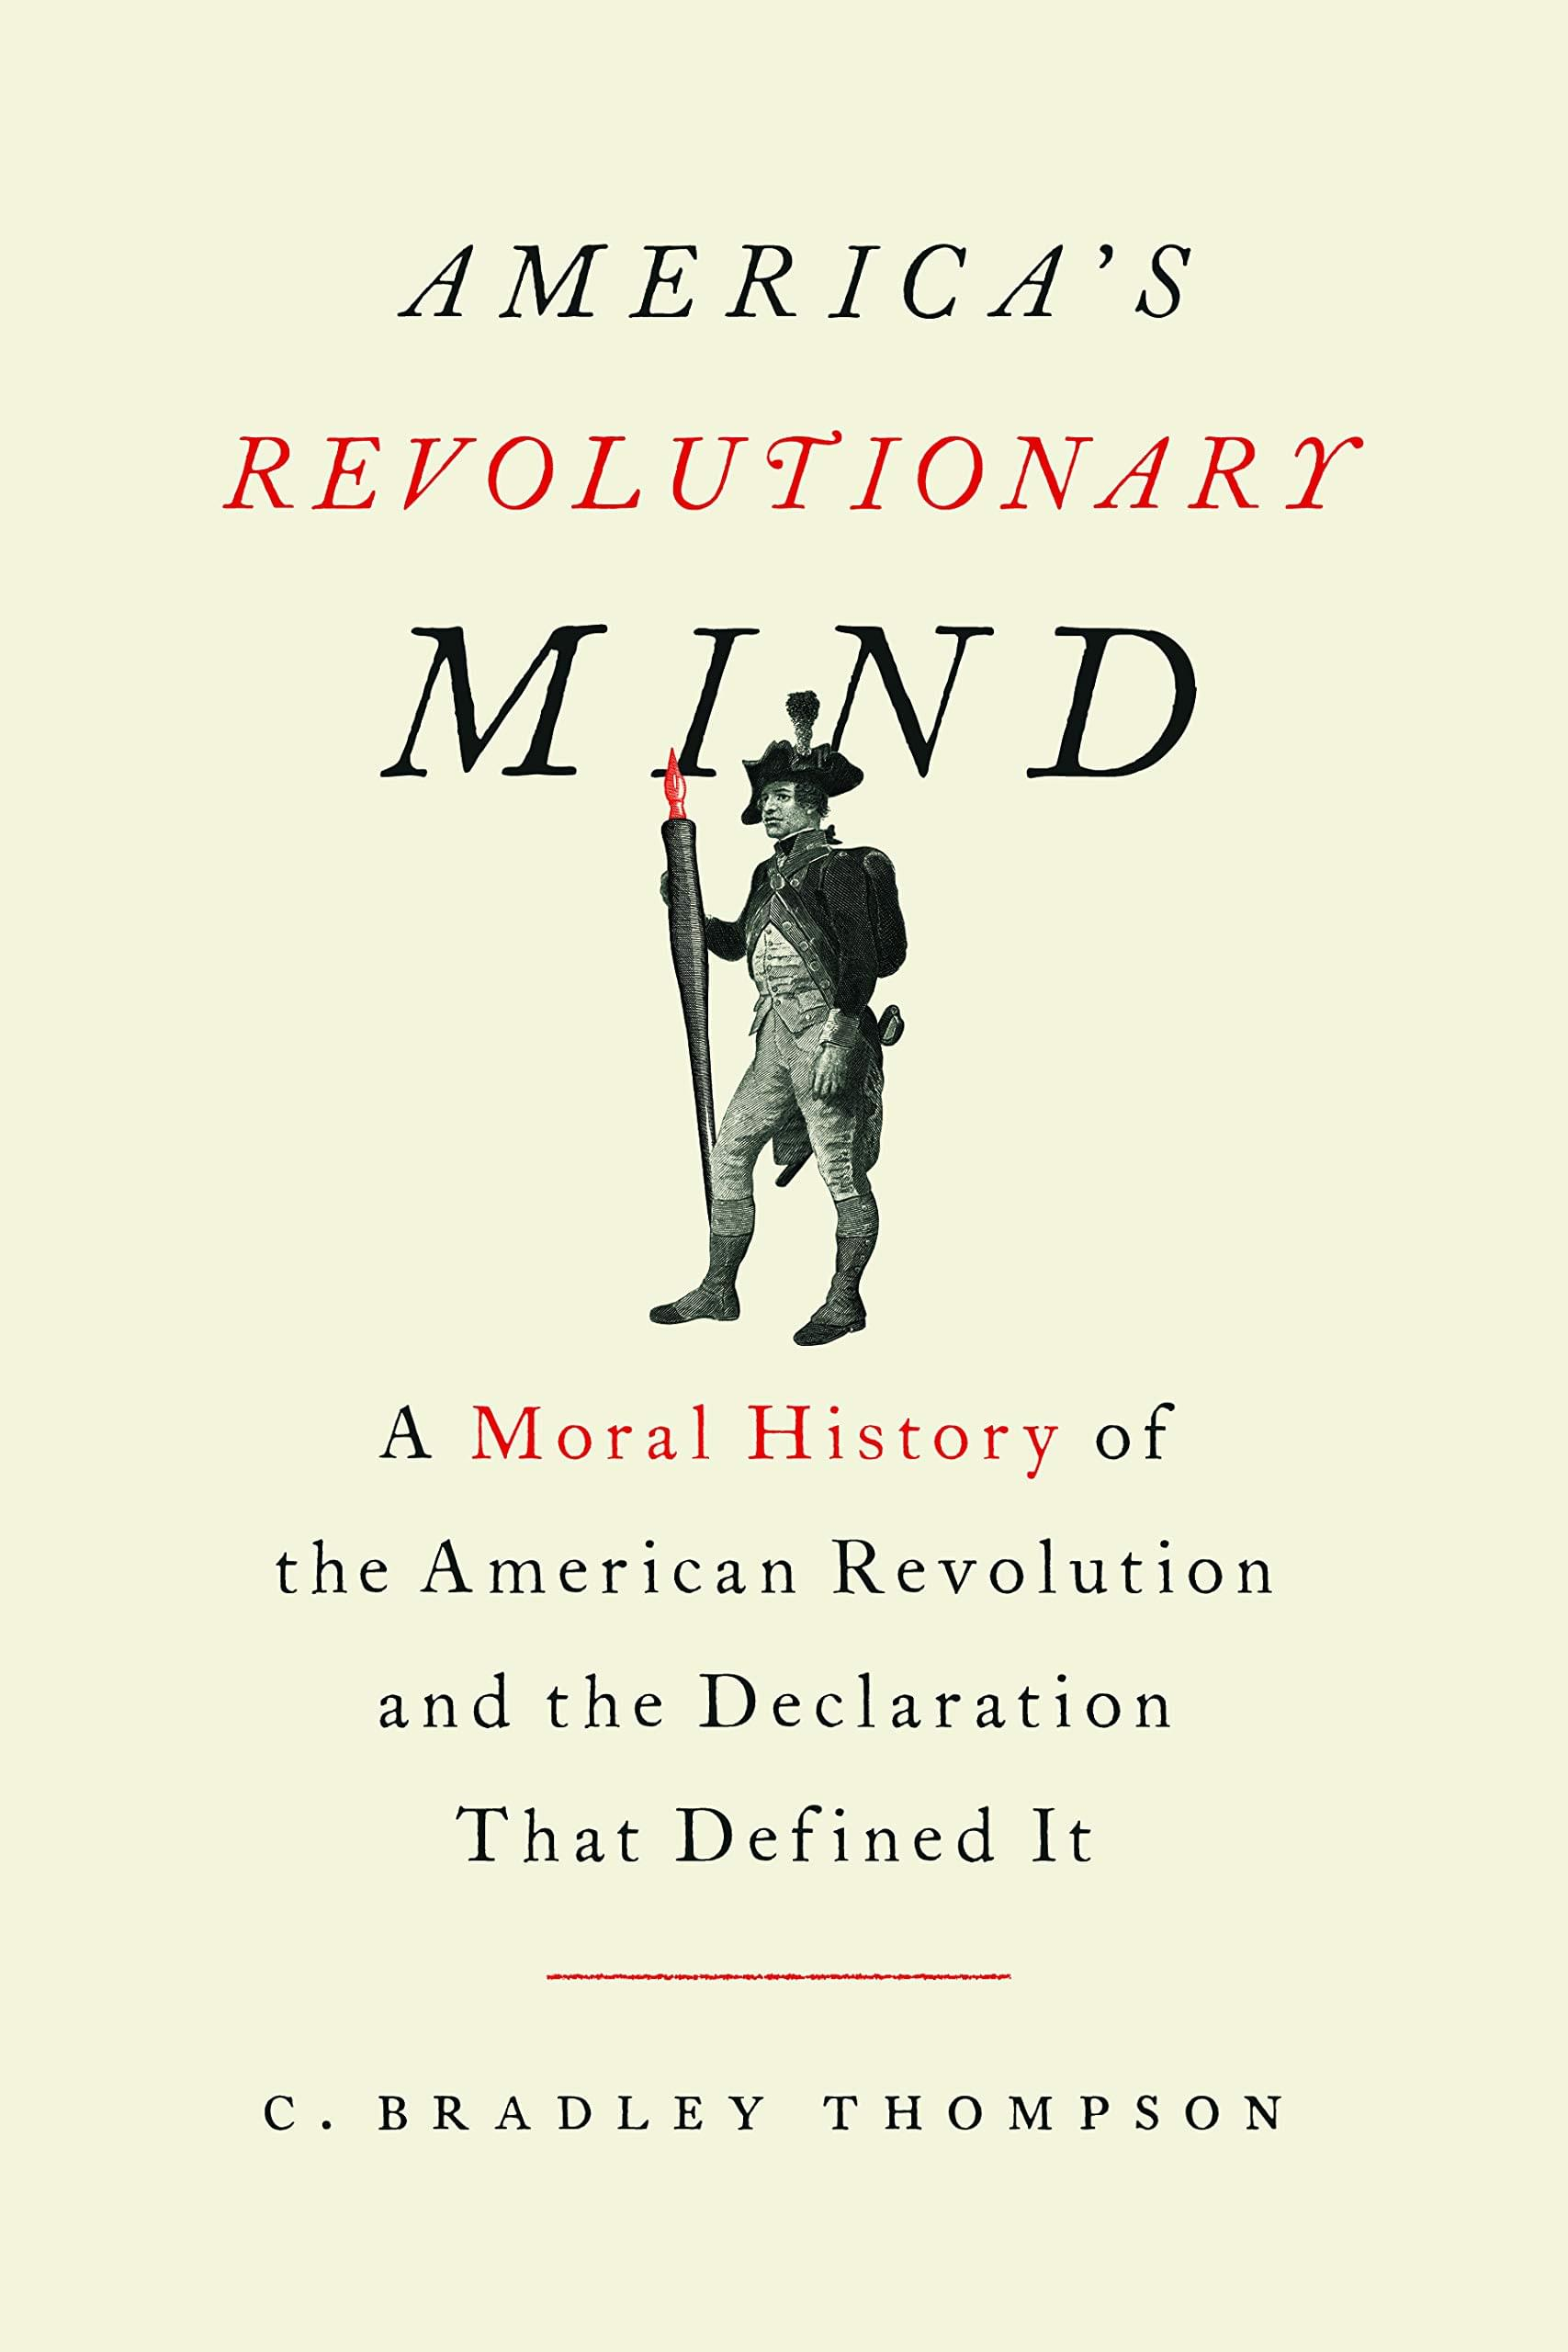 AMERICA'S REVOLUTIONARY MIND